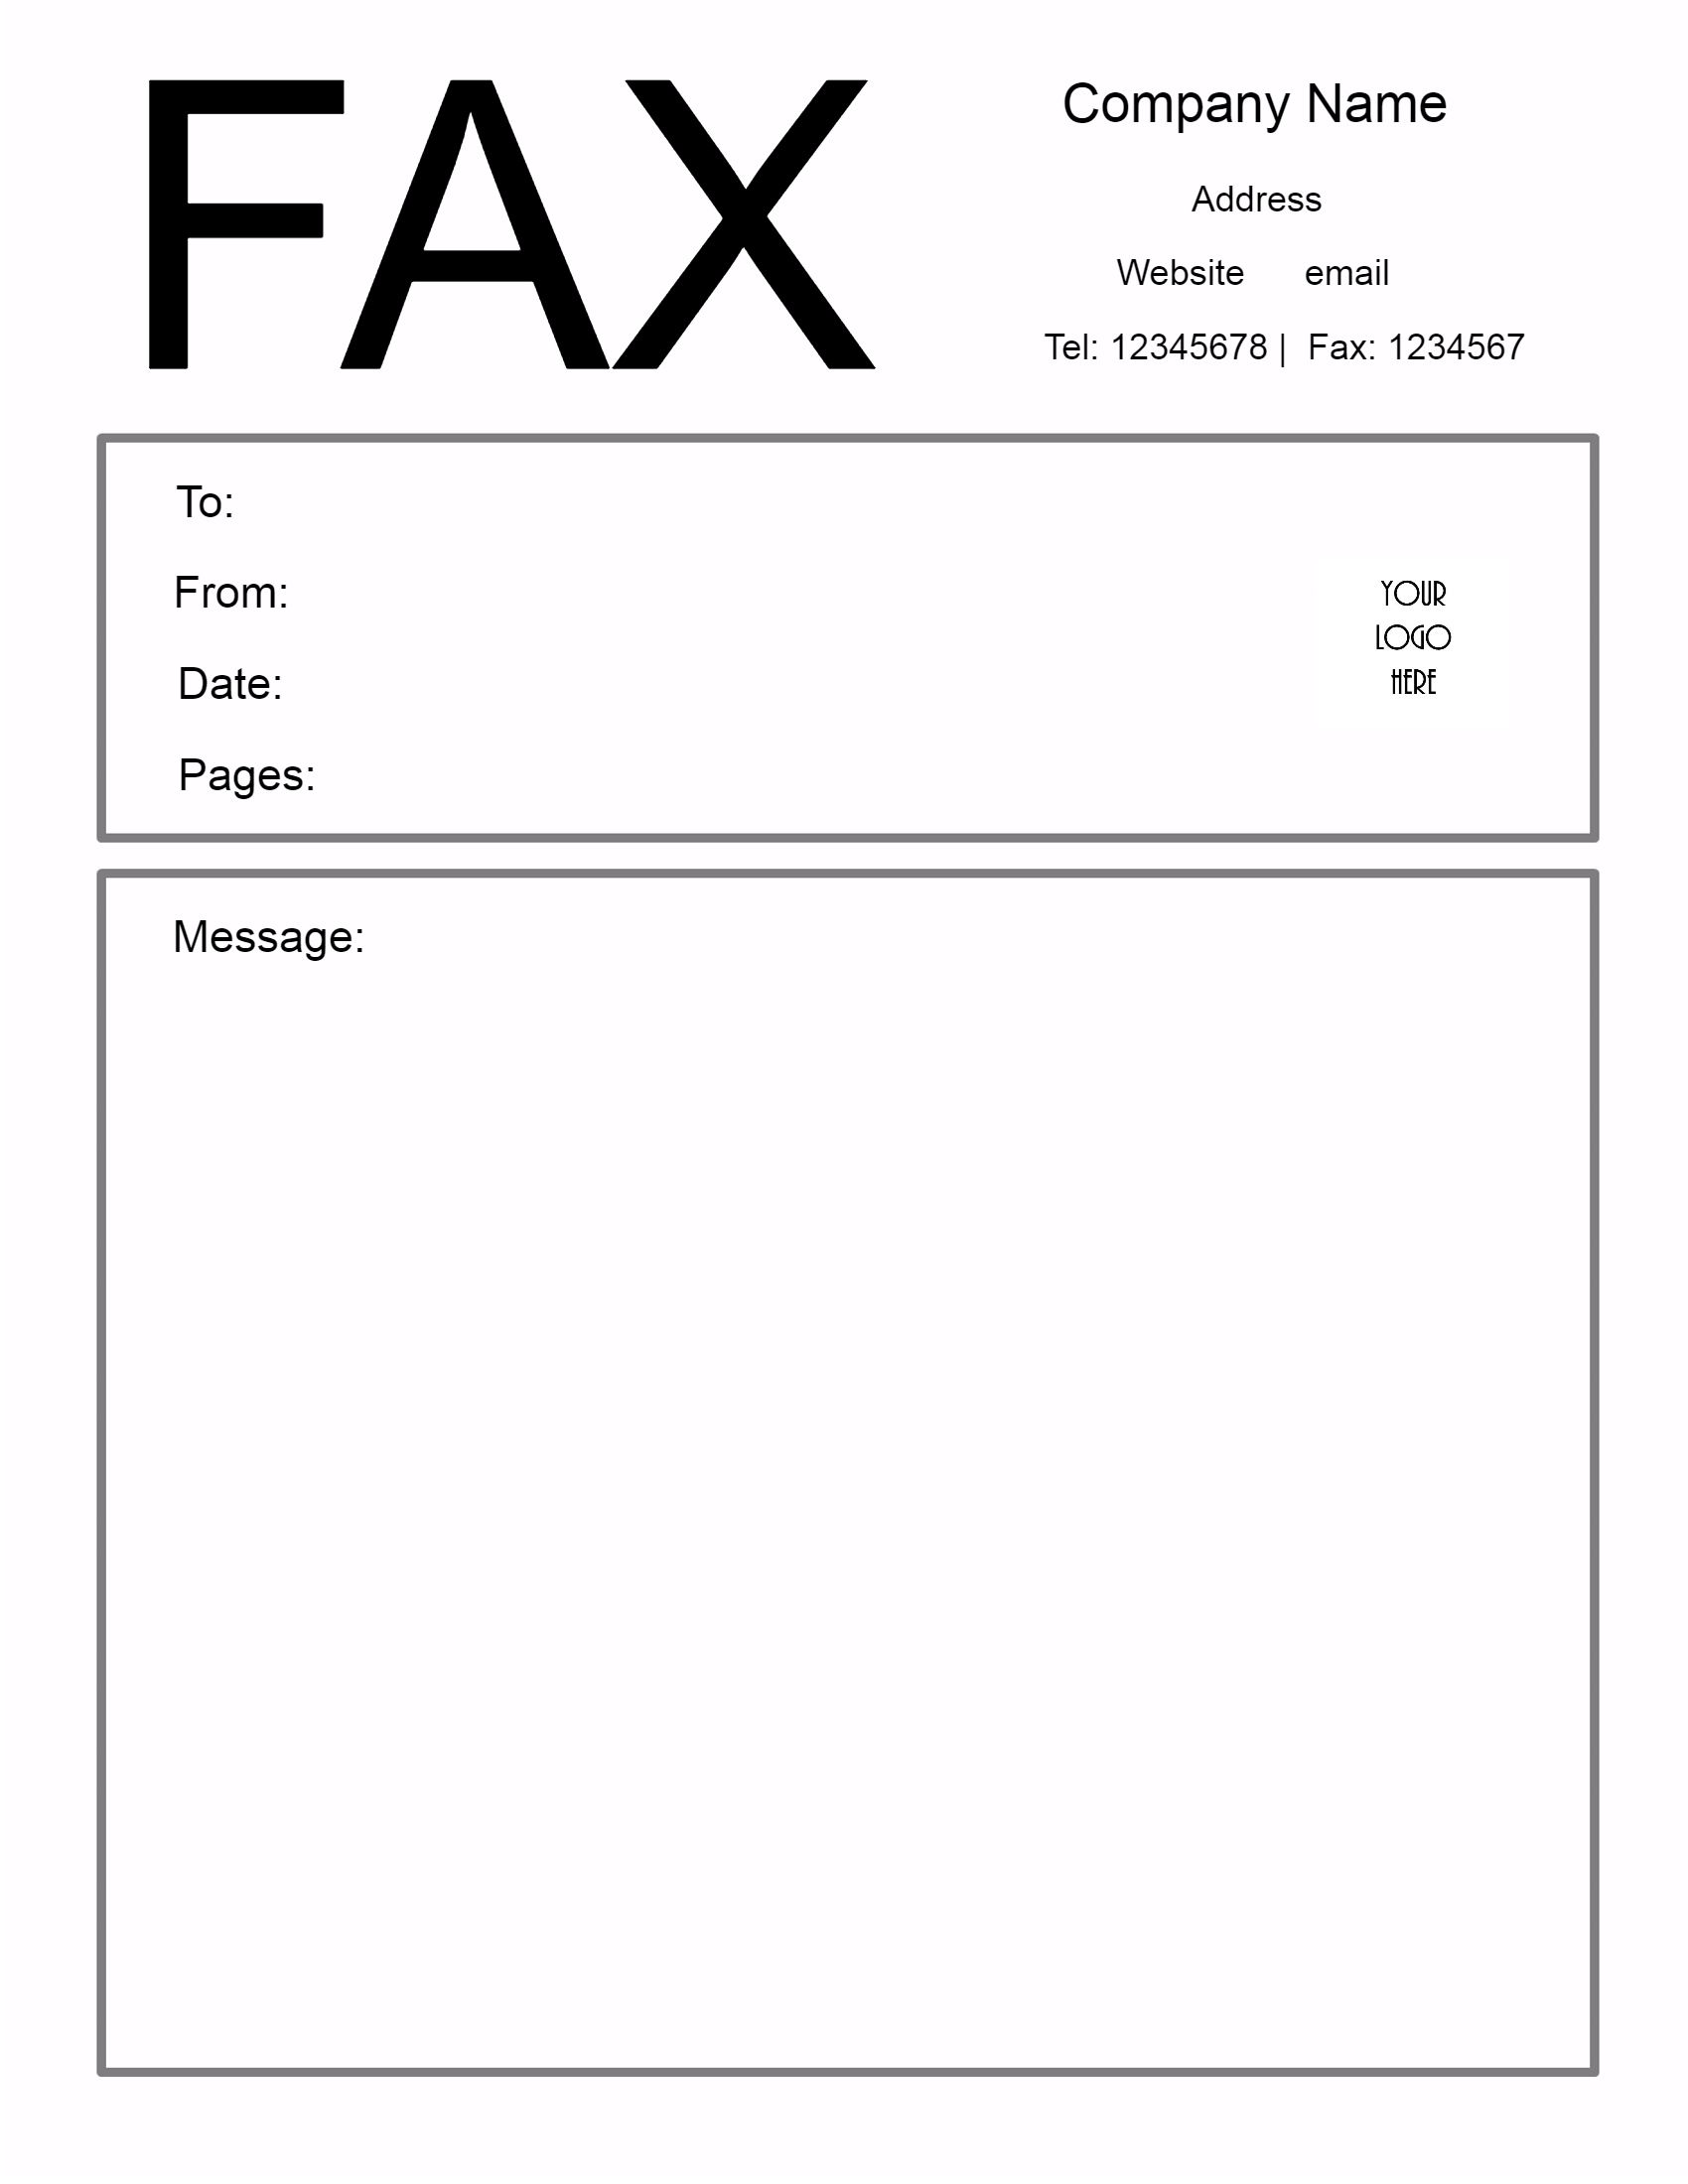 fingerprint template sample - free fax cover sheet template customize online then print